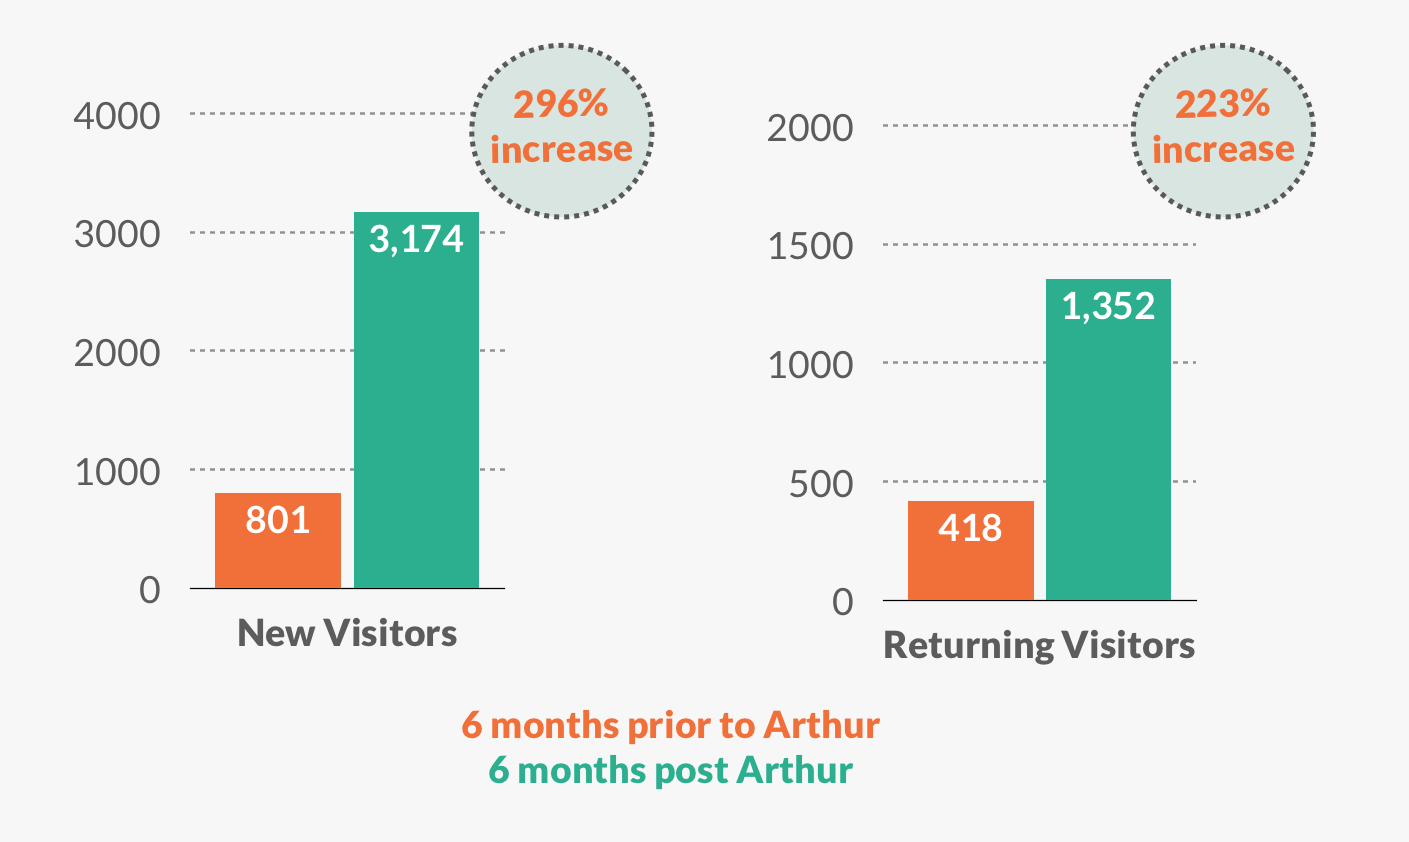 Marketing KPIs - New vs Returning Visitors